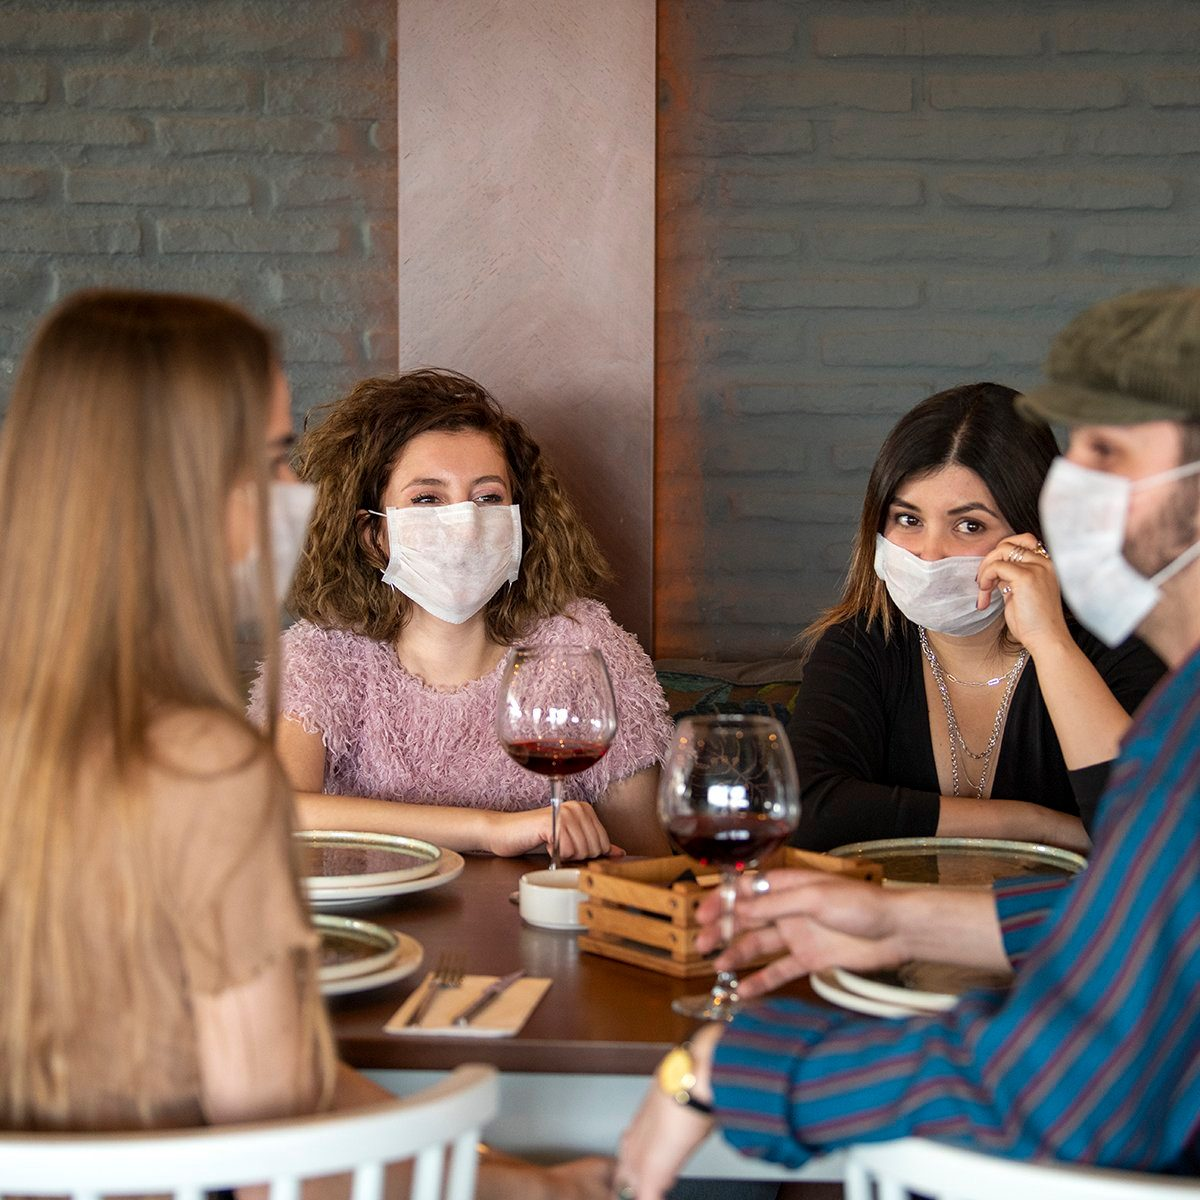 masked diners